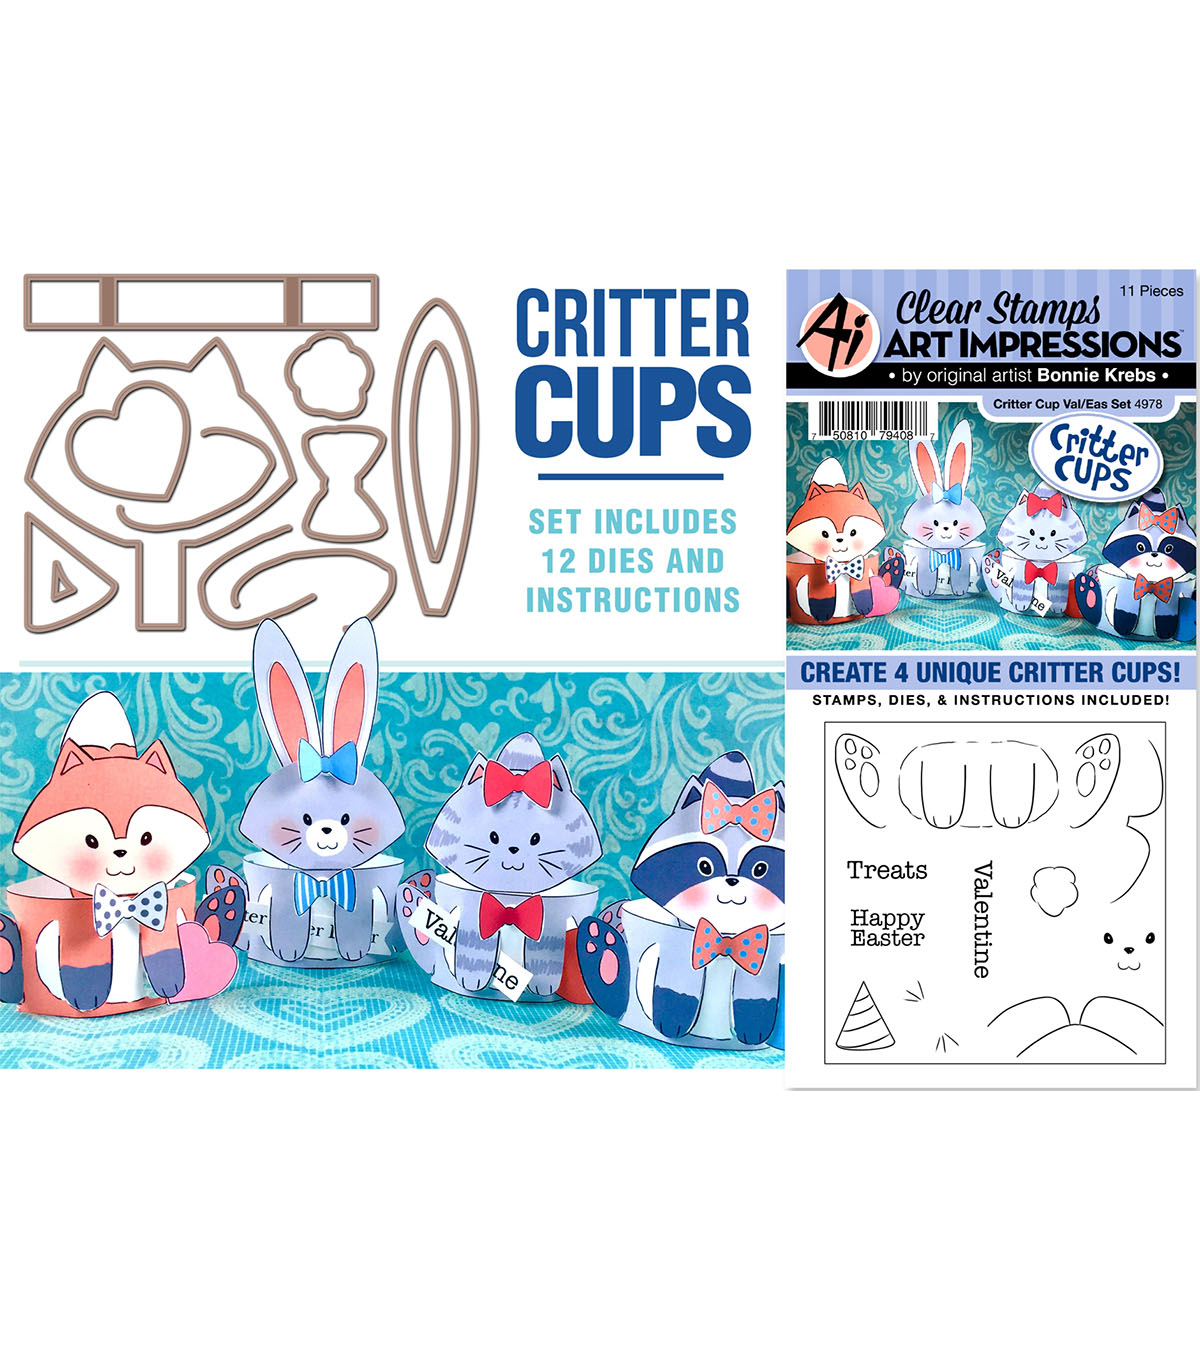 Art Impressions Critter Cups Valentines & Easter Stamp & Die Set